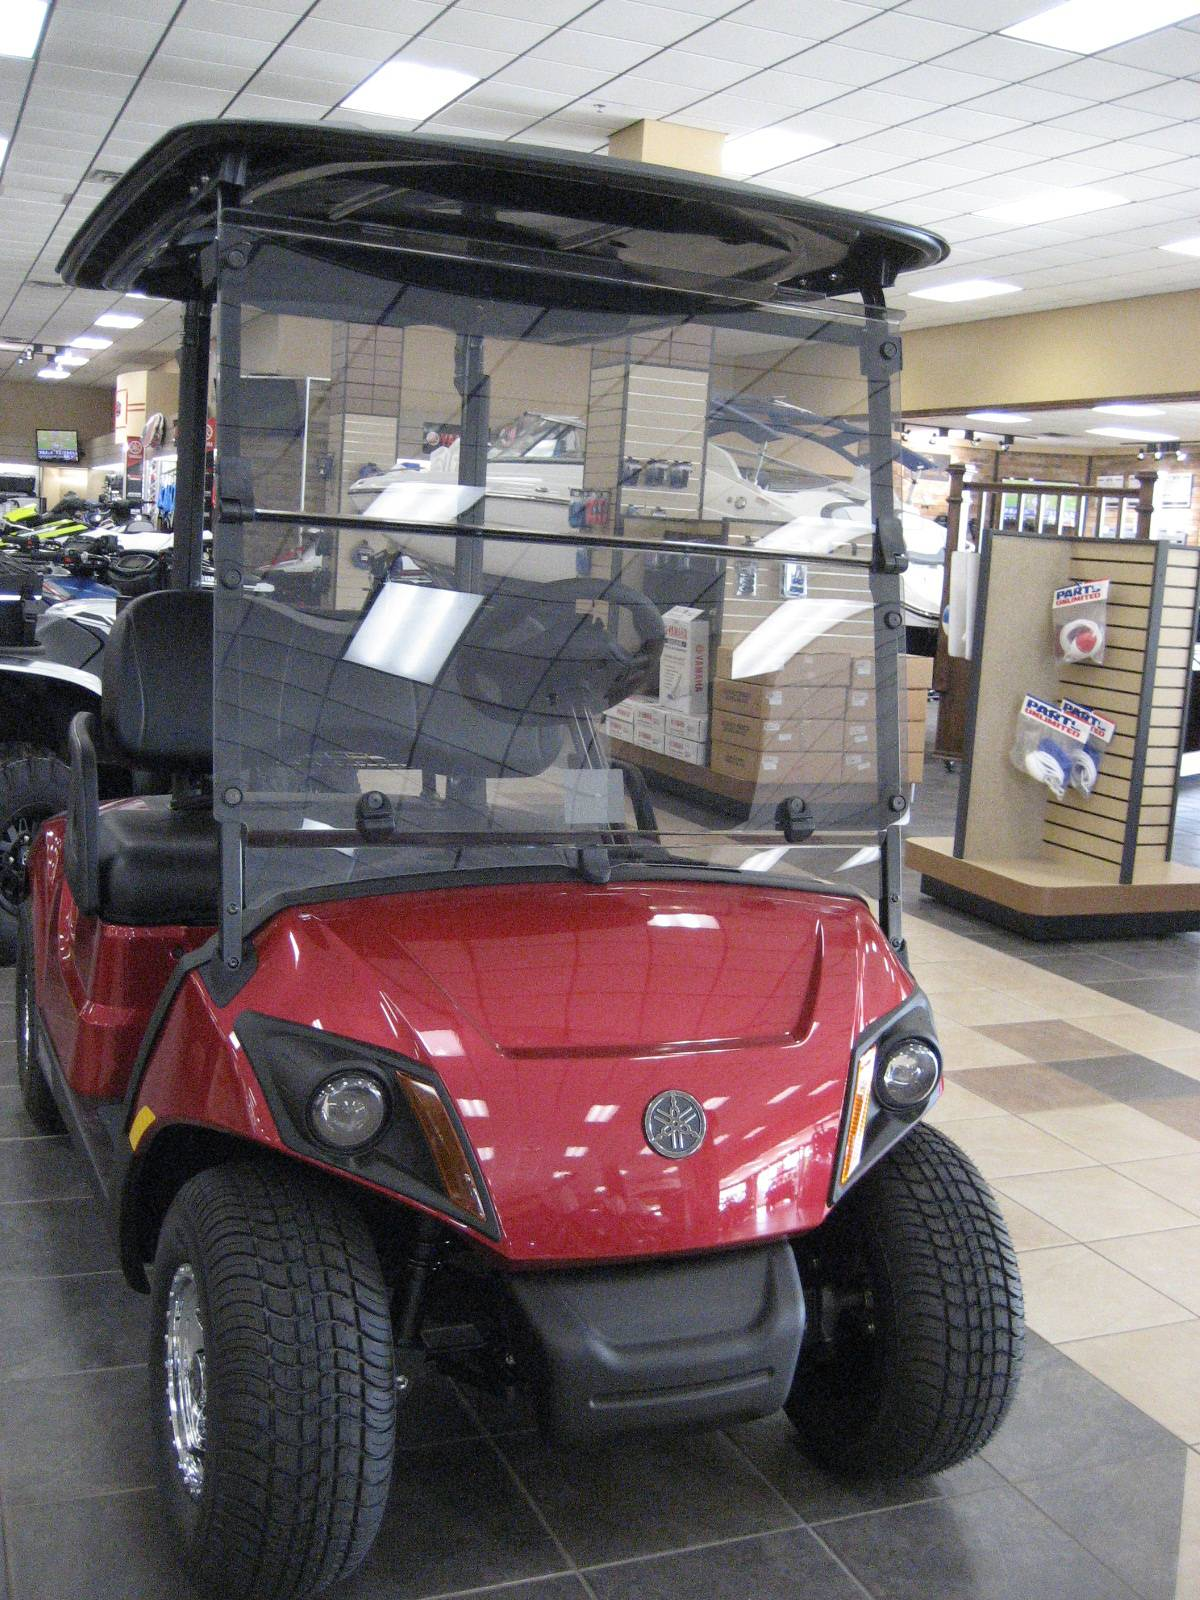 yamaha golf carts oklahoma 6 lead placement for telemetry new 2019 the drive2 fleet ac in